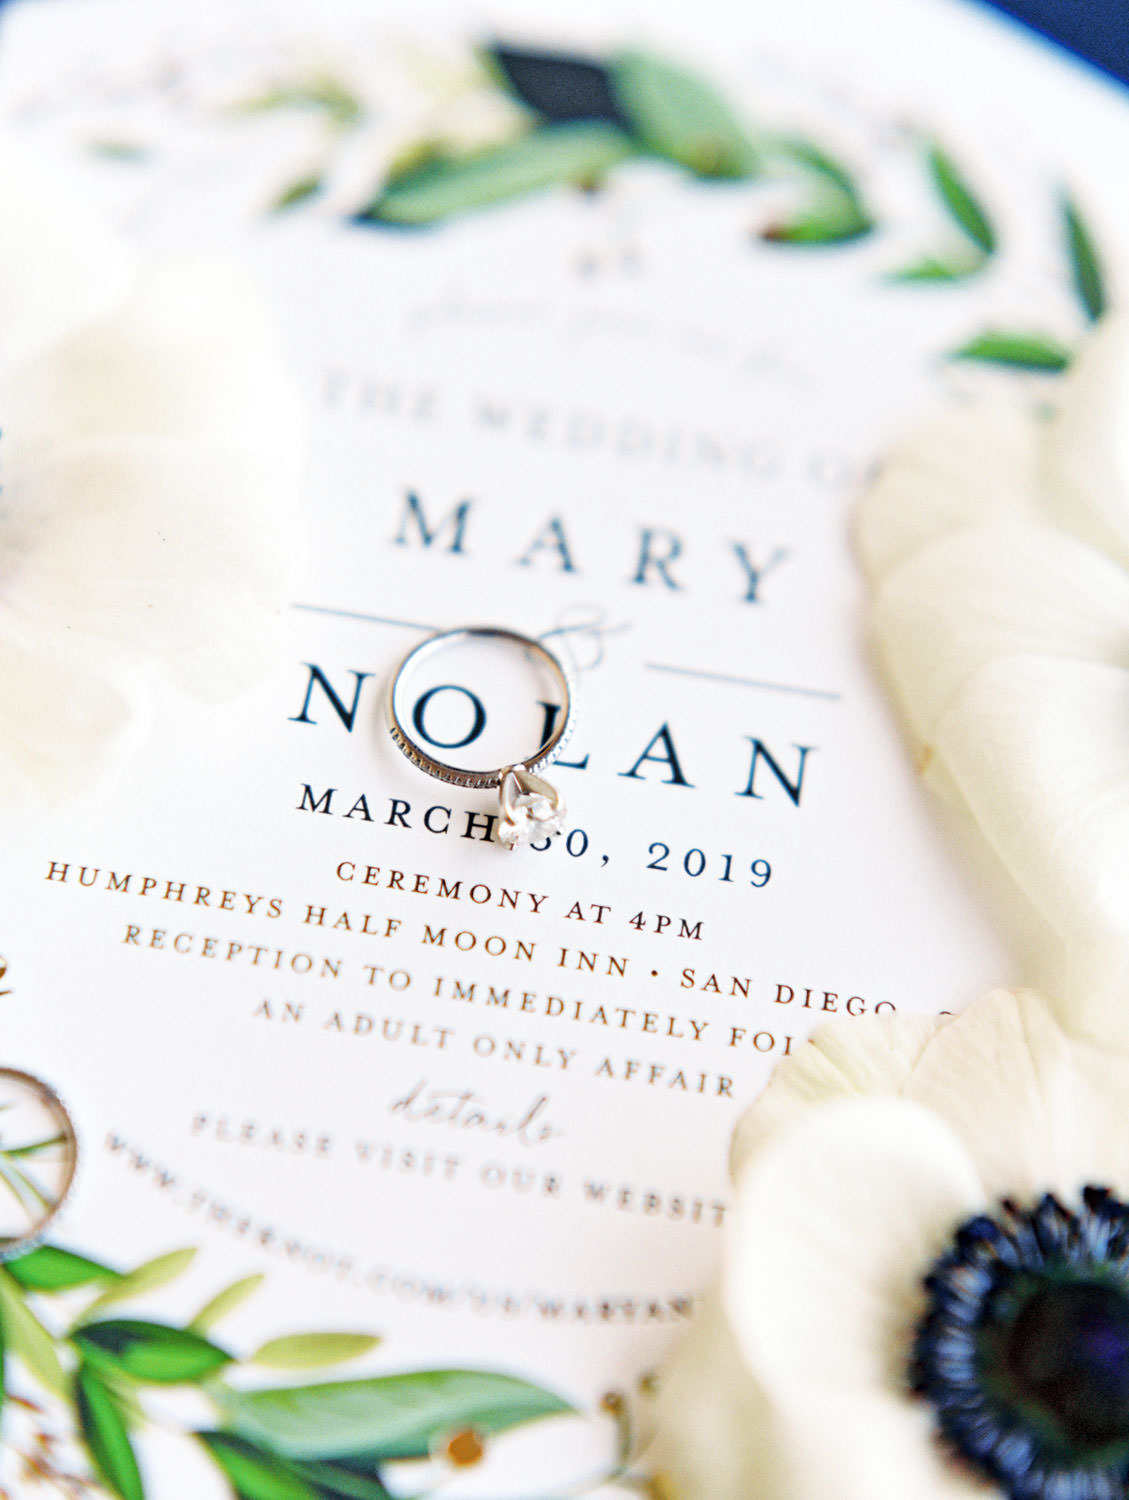 Solitaire engagement ring surrounded by anemones and ivory and green invitation on film, Wedding at Humphreys Half Moon Inn by Cavin Elizabeth Photography